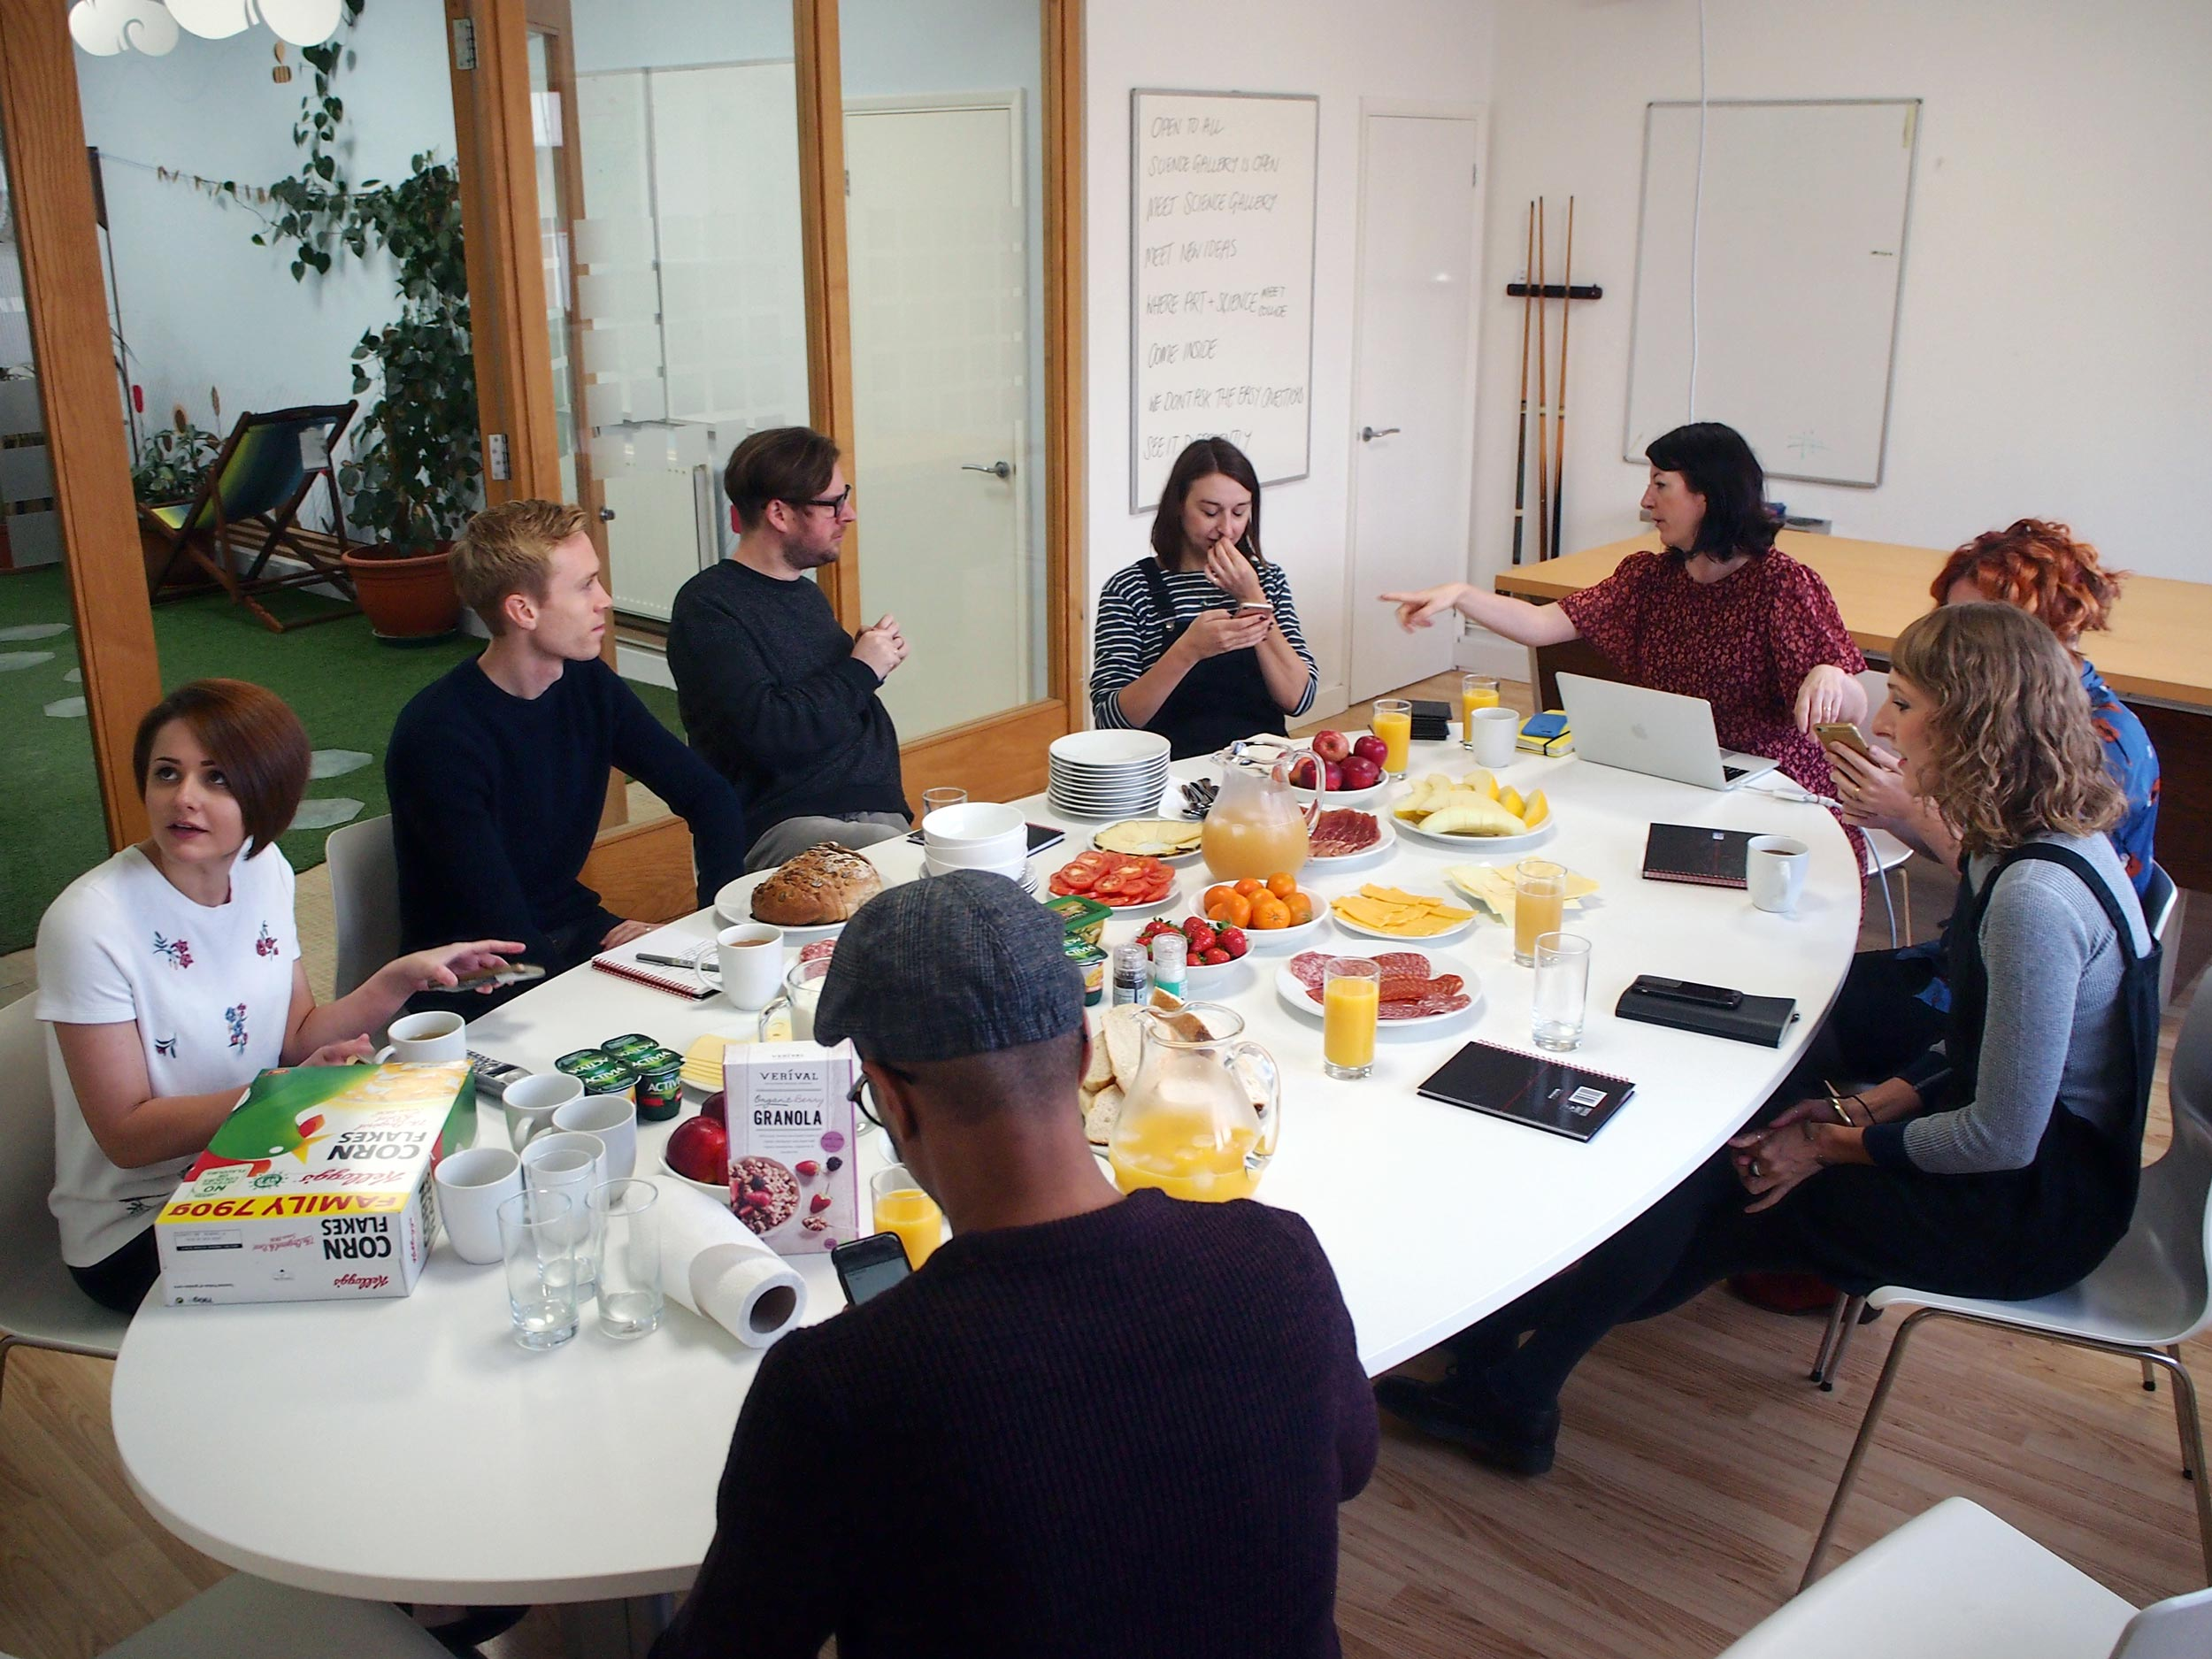 Eight people sitting around a white oval table, filled with fruit and other breakfast food